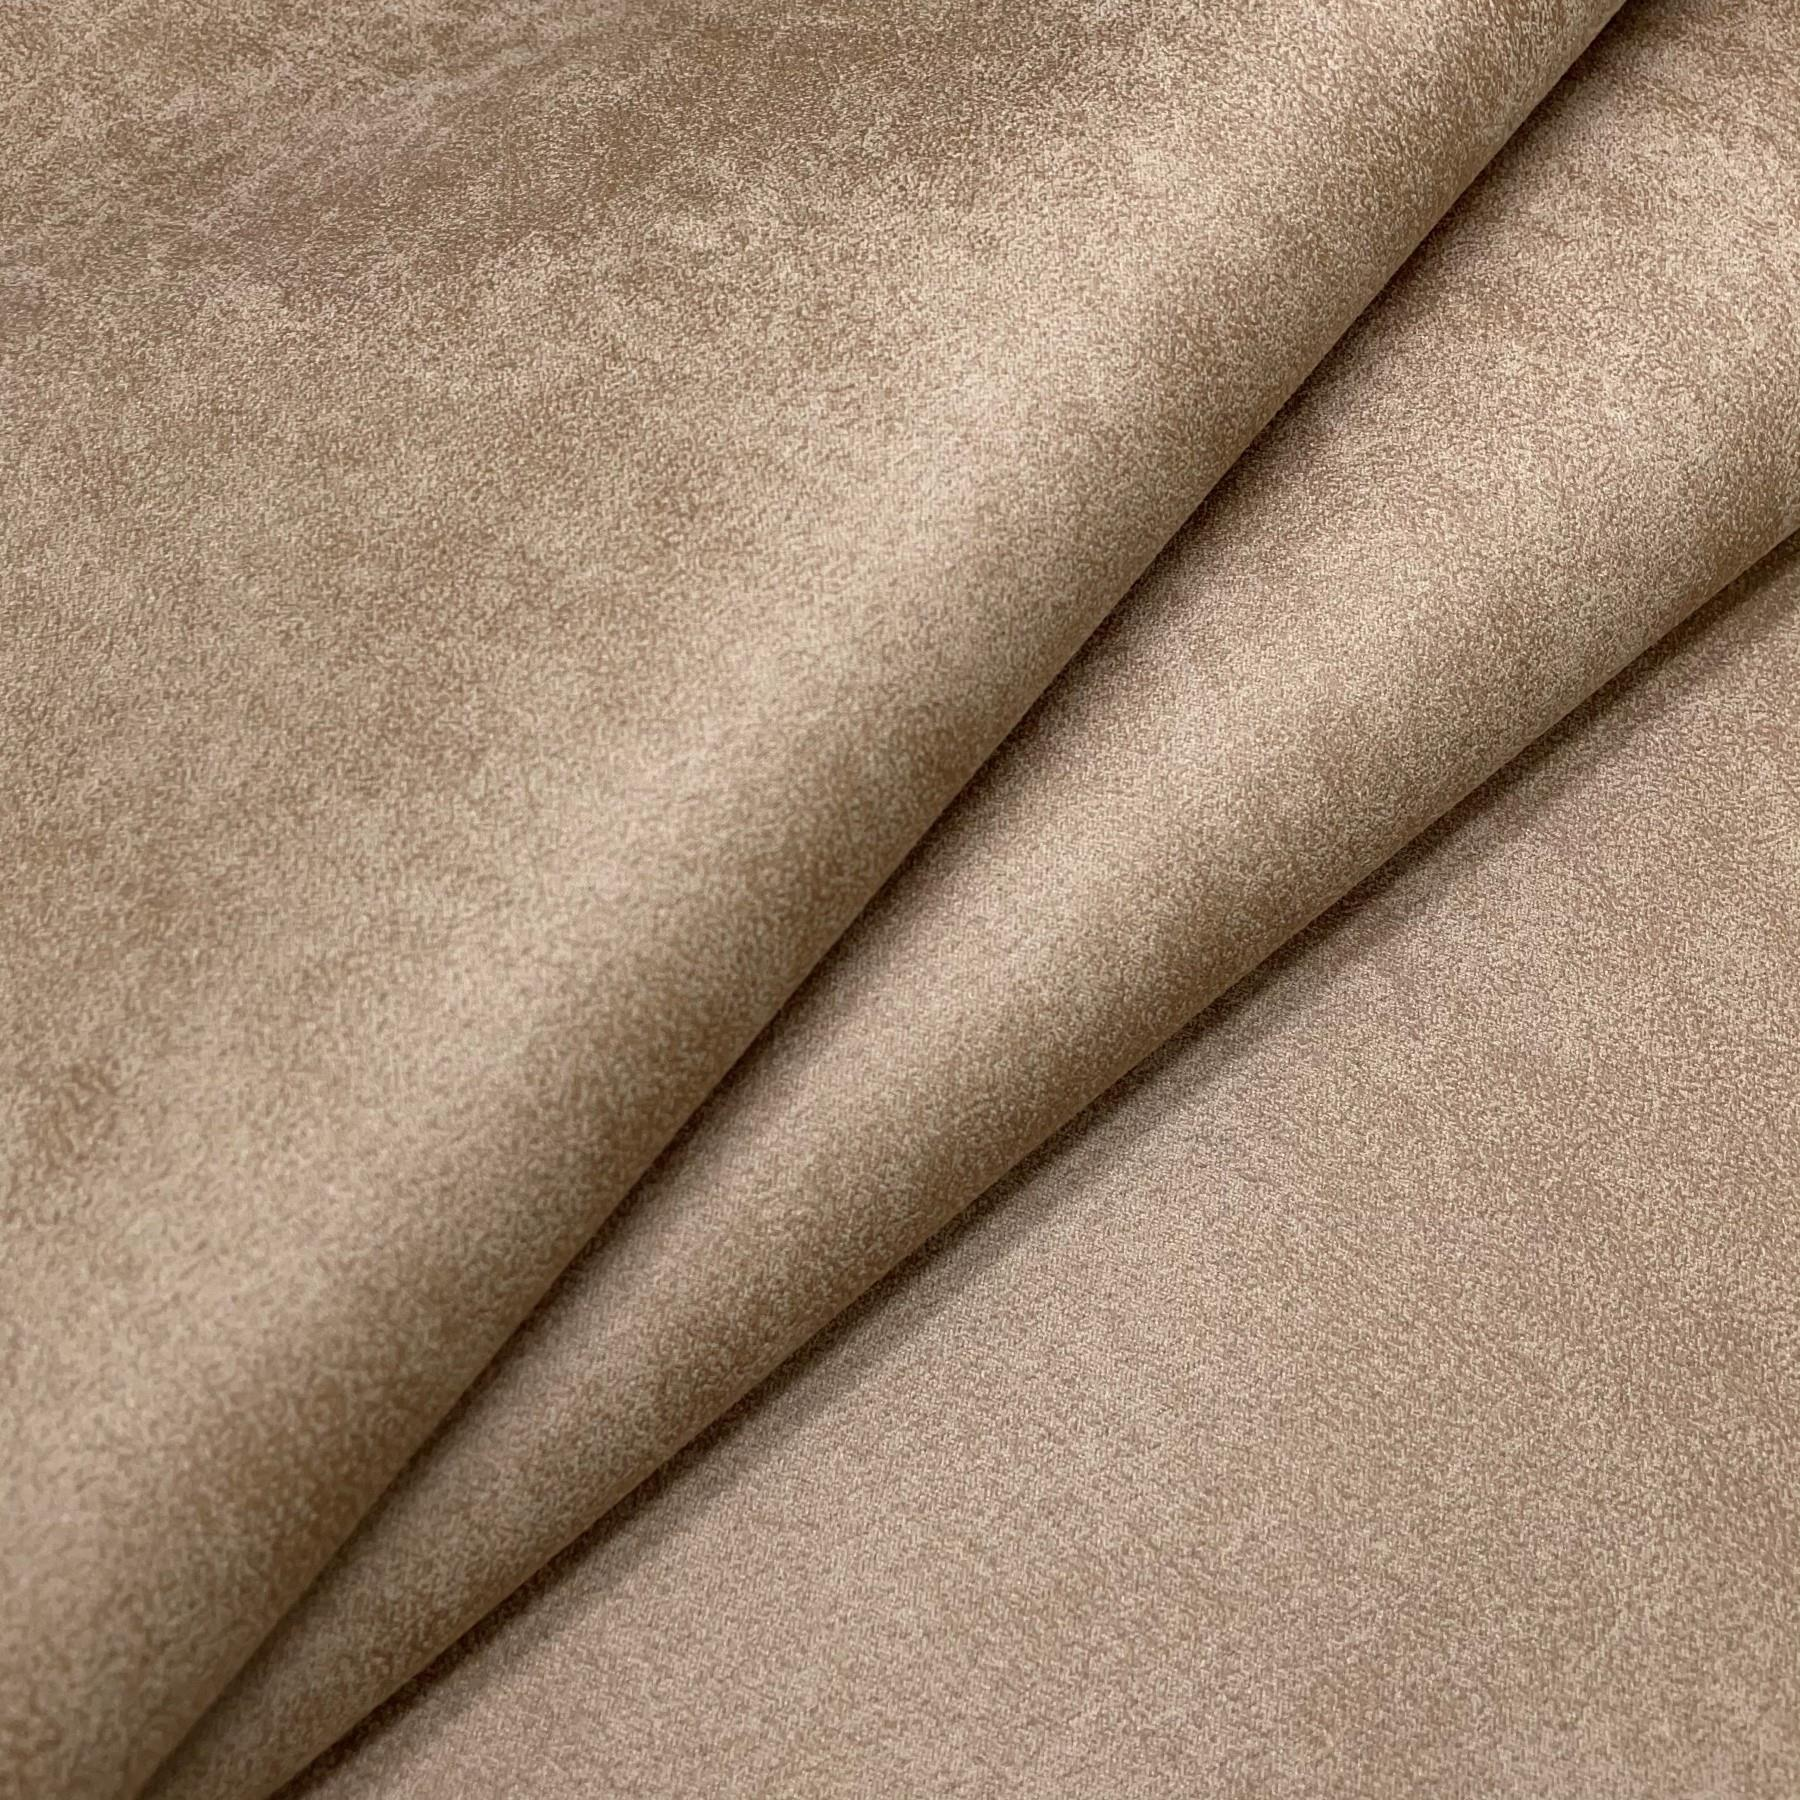 thumbnail 7 - AGED BROWN DISTRESSED ANTIQUED SUEDE FAUX LEATHER LEATHERETTE UPHOLSTERY FABRIC